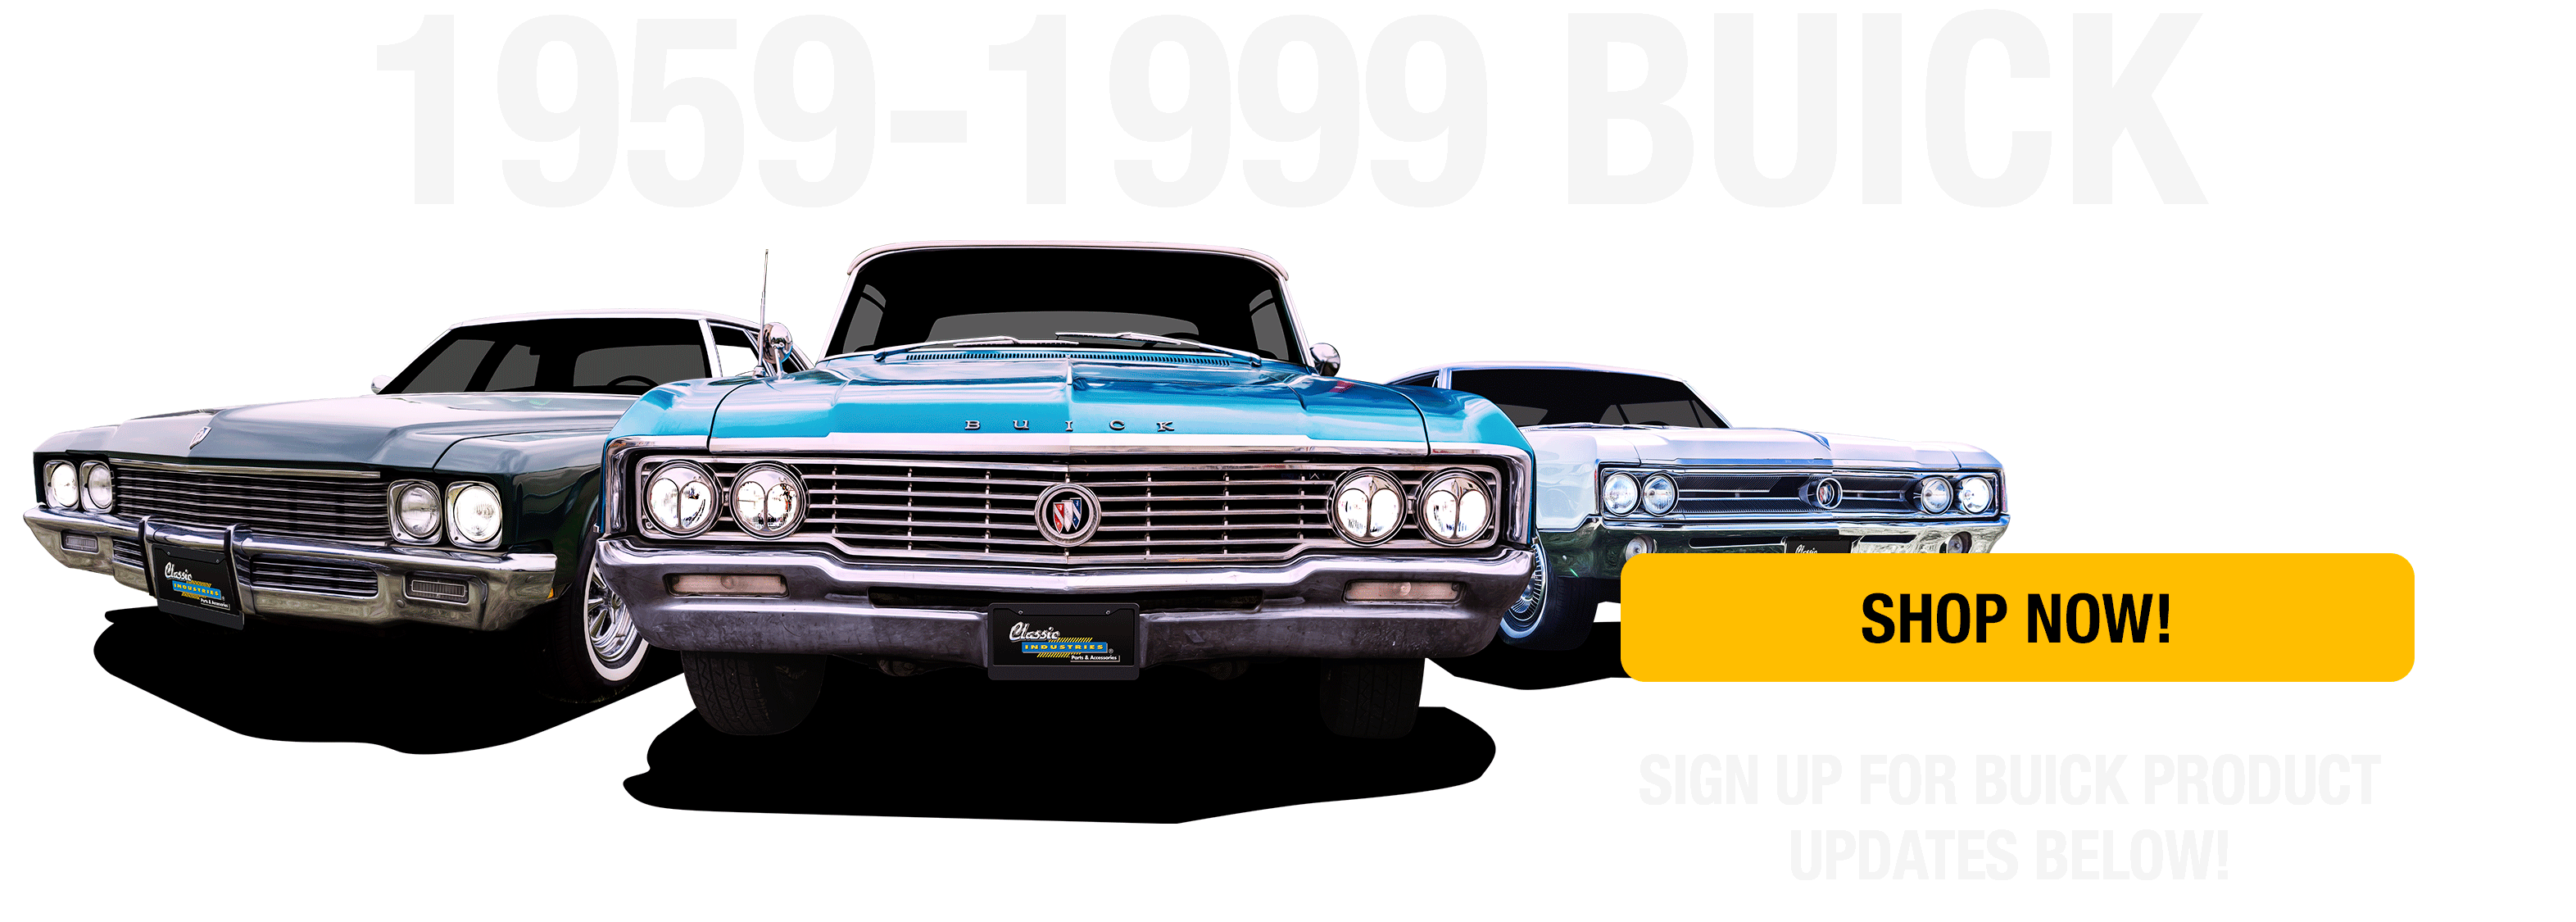 1959-1999 Buick - Show Now!